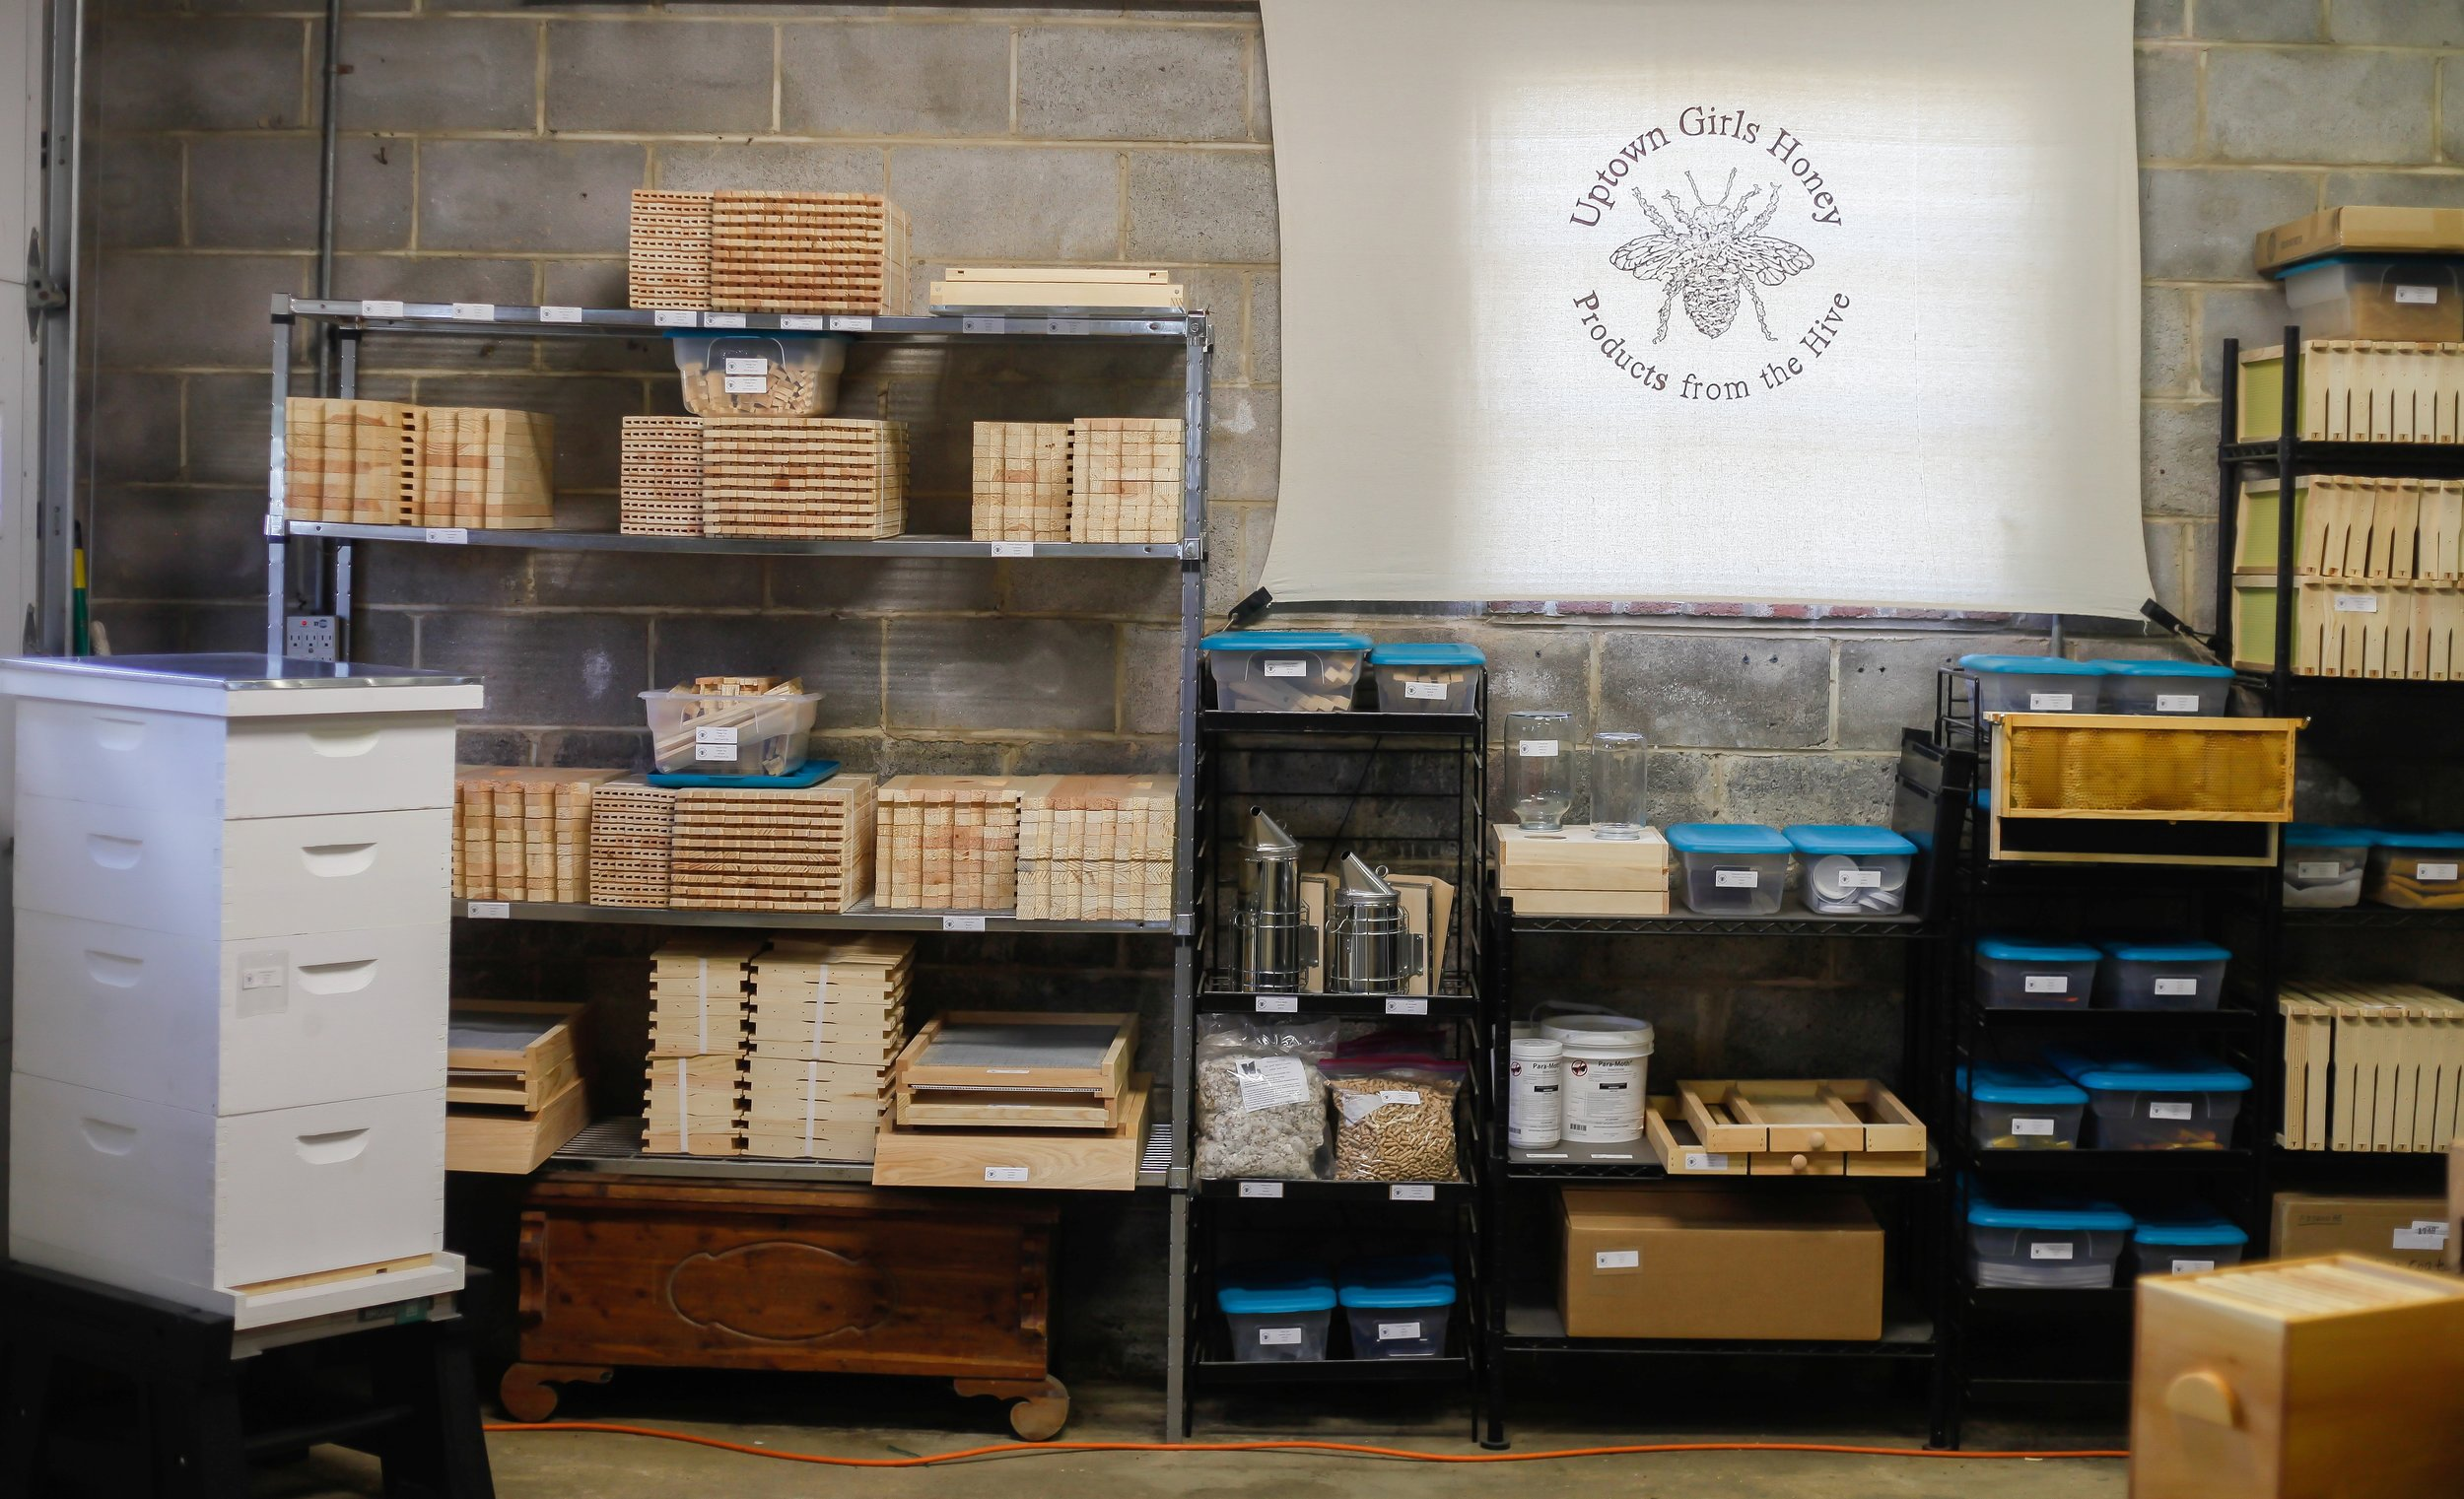 Full Line of Equipment - Everything you need to start or grow your apiary